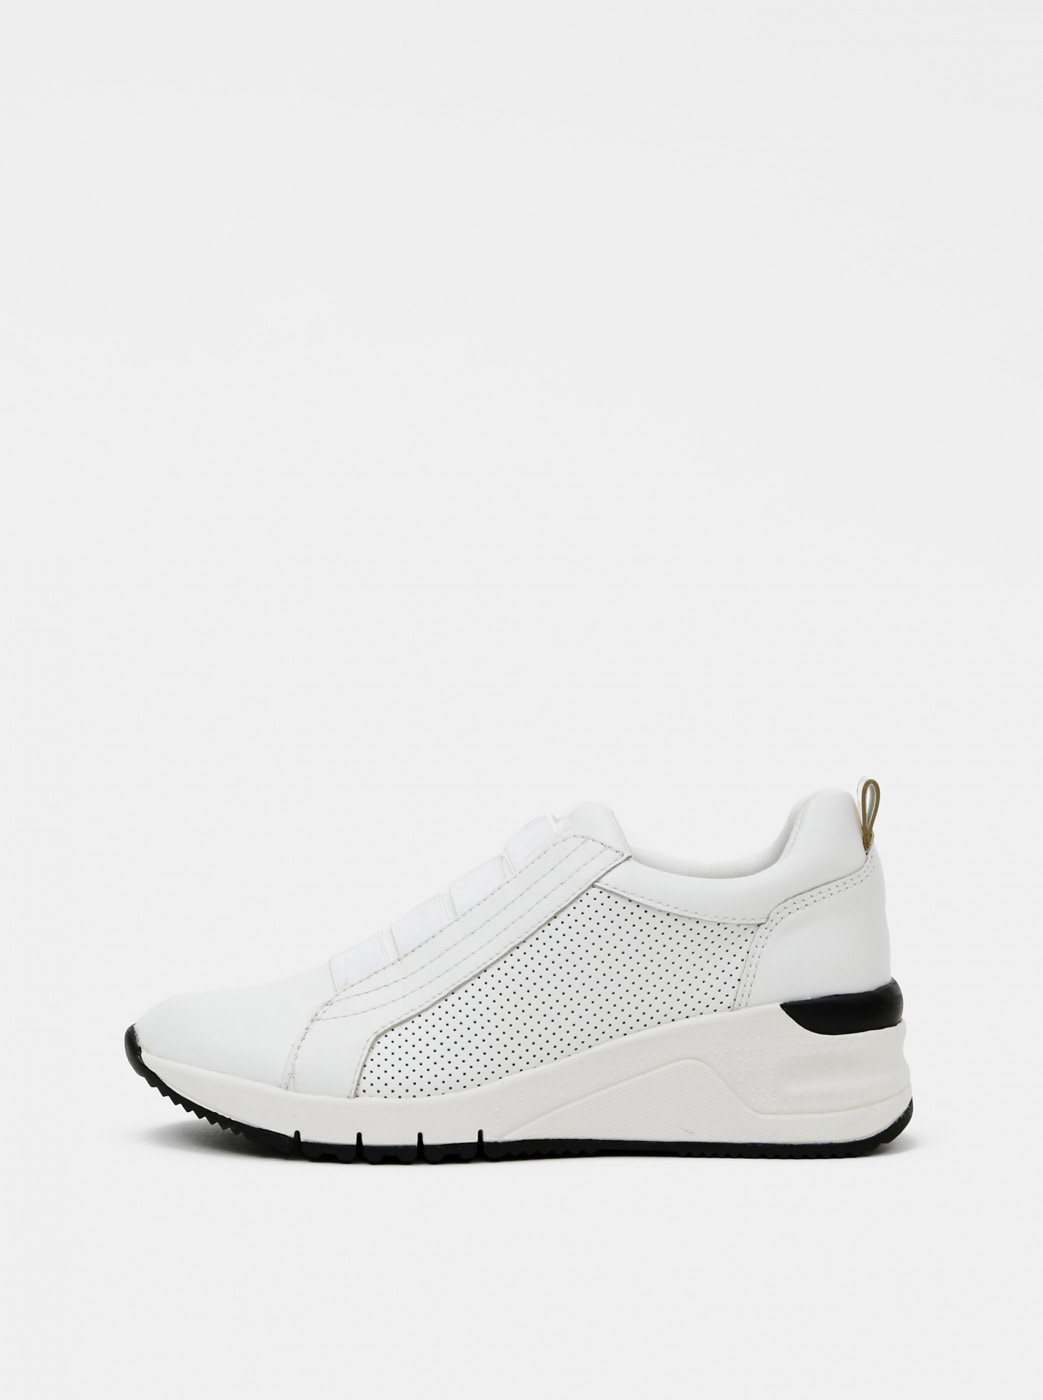 Tamaris White Leather Sneakers